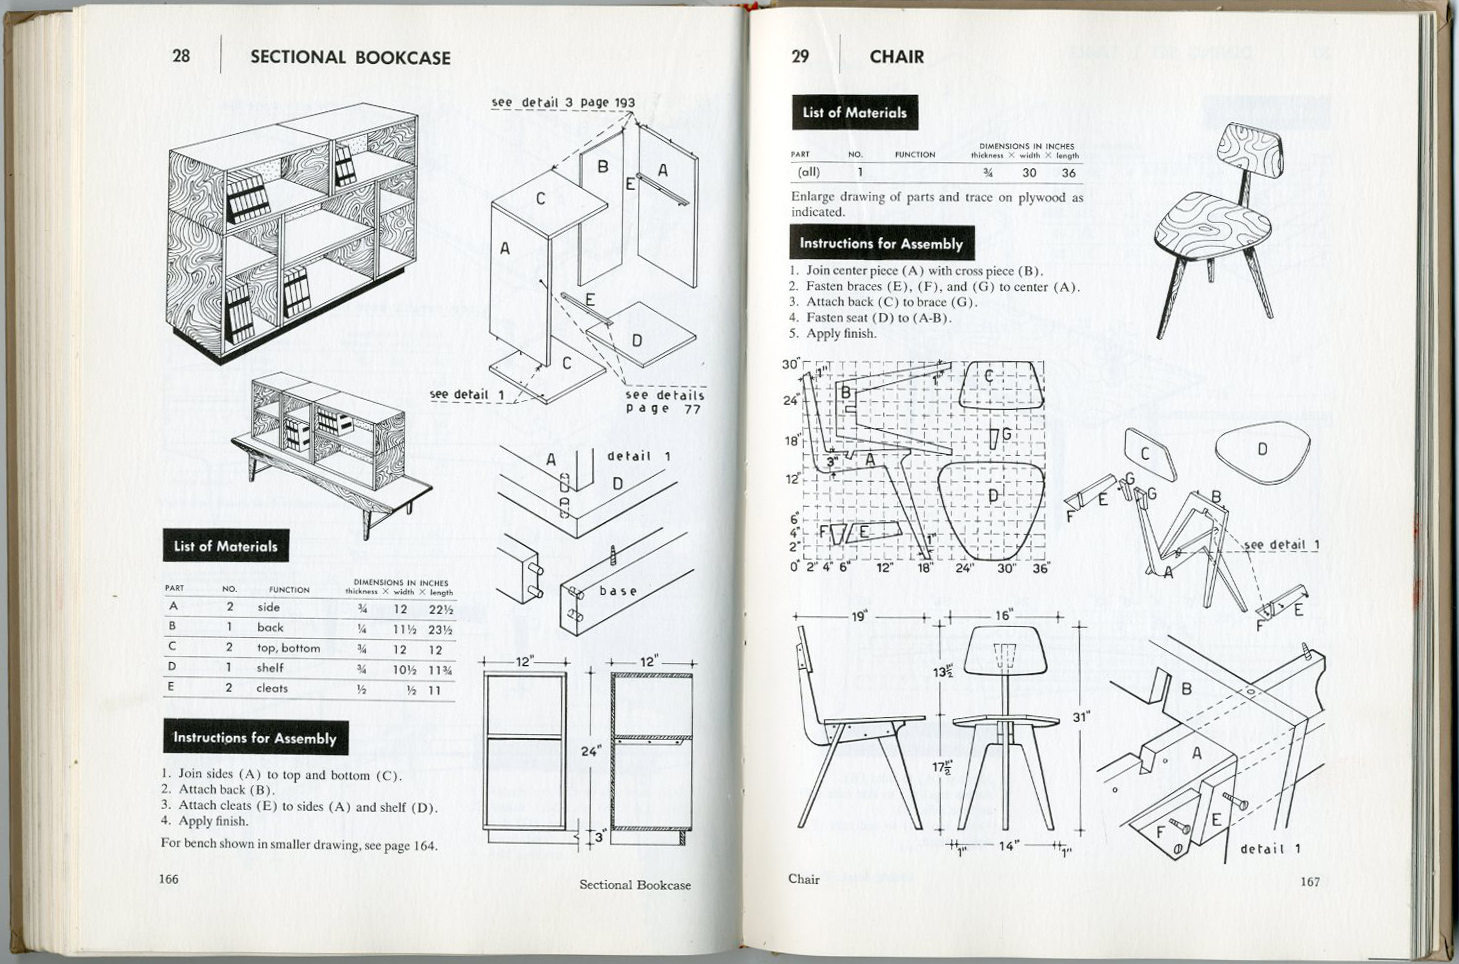 Amazing How To Build Modern Furniture By Mario Dal Fabbro, McGraw Hill, 1957 (back  Cover Table Of Contents!)